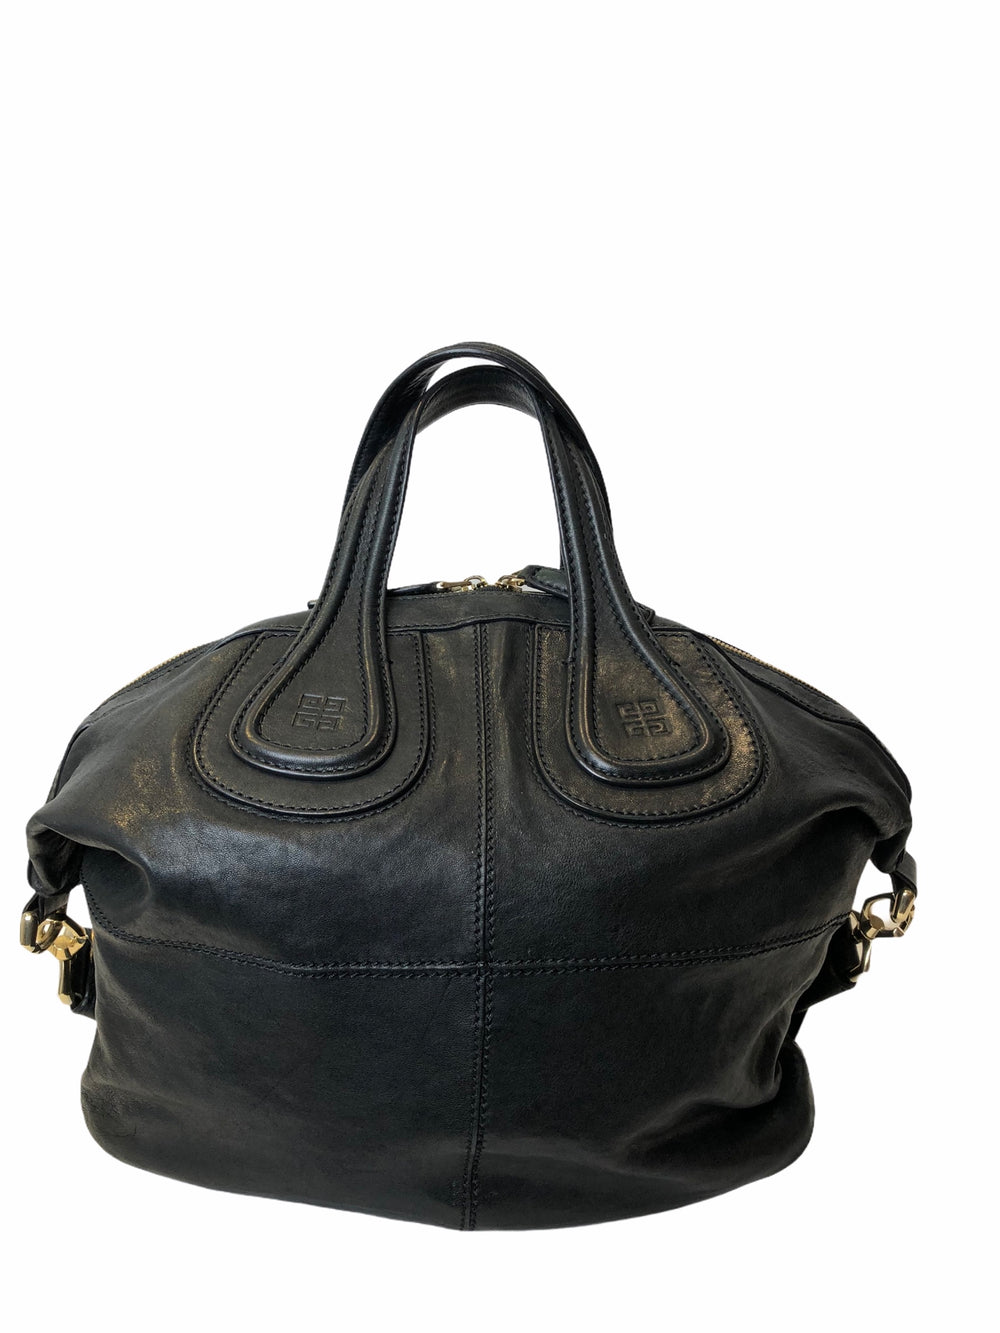 Givenchy Black Leather Tote Bag - As Seen on Instagram